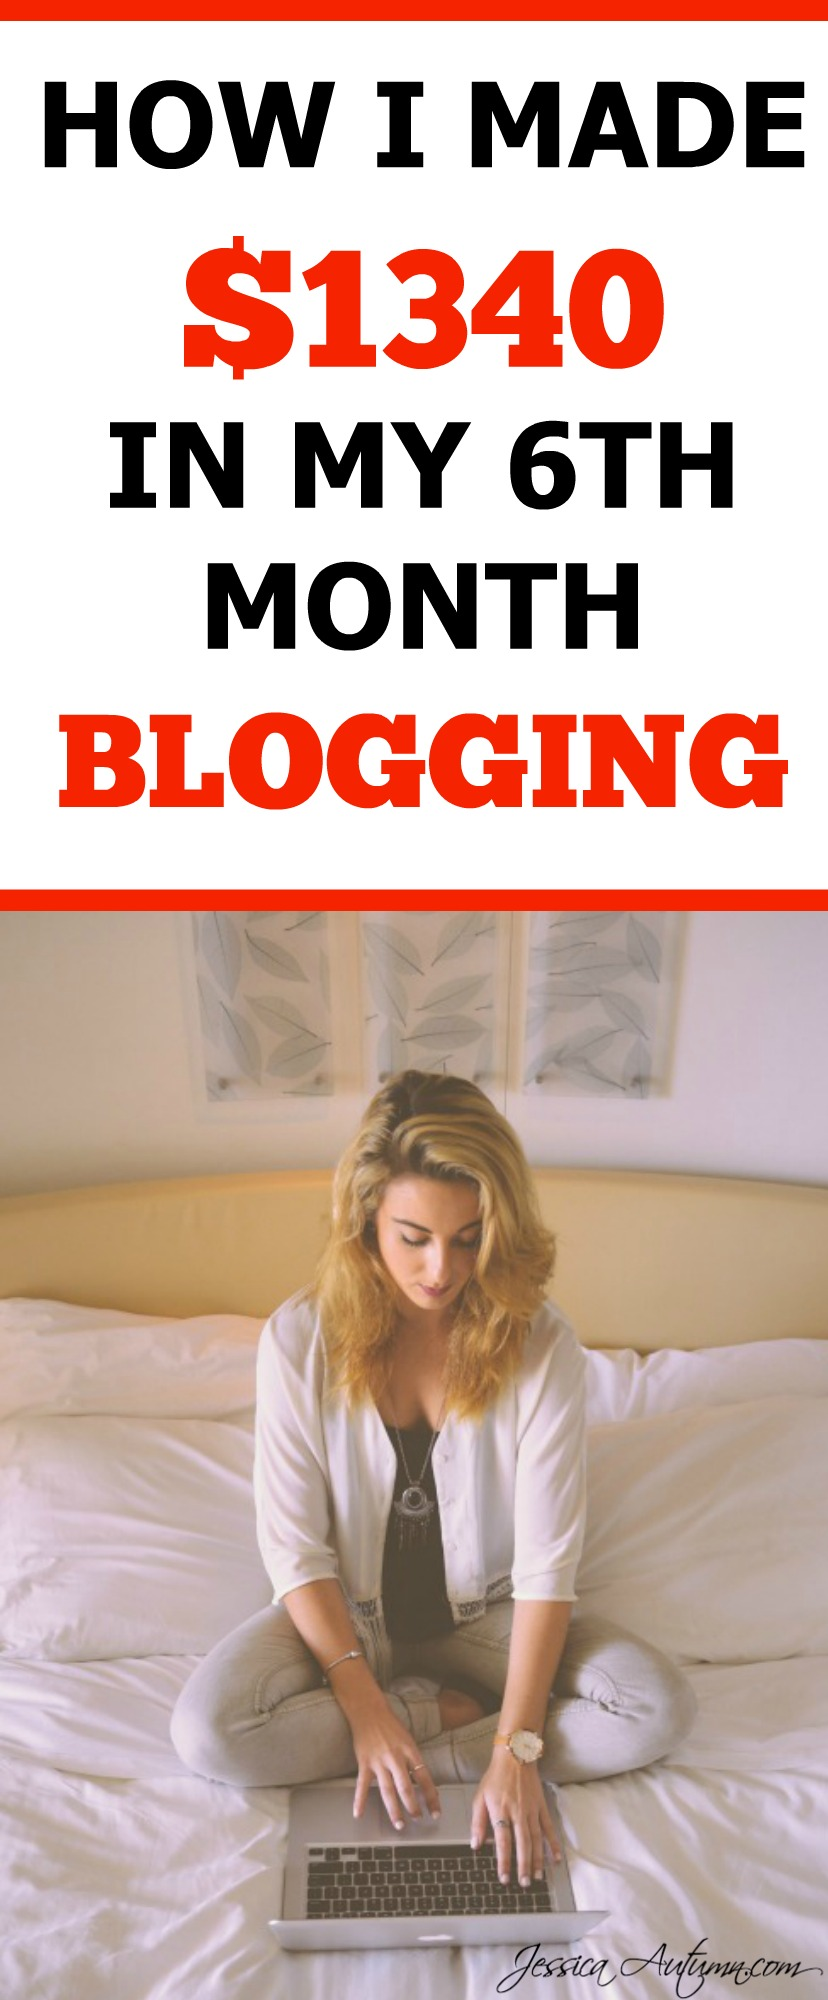 How I Made $1340 In My 6th Month Blogging. Find out how many pageviews I got this month and how much money I made. Making money online is more than possible. Lots of great advice for new and aspiring bloggers to get more pageviews and start making money.